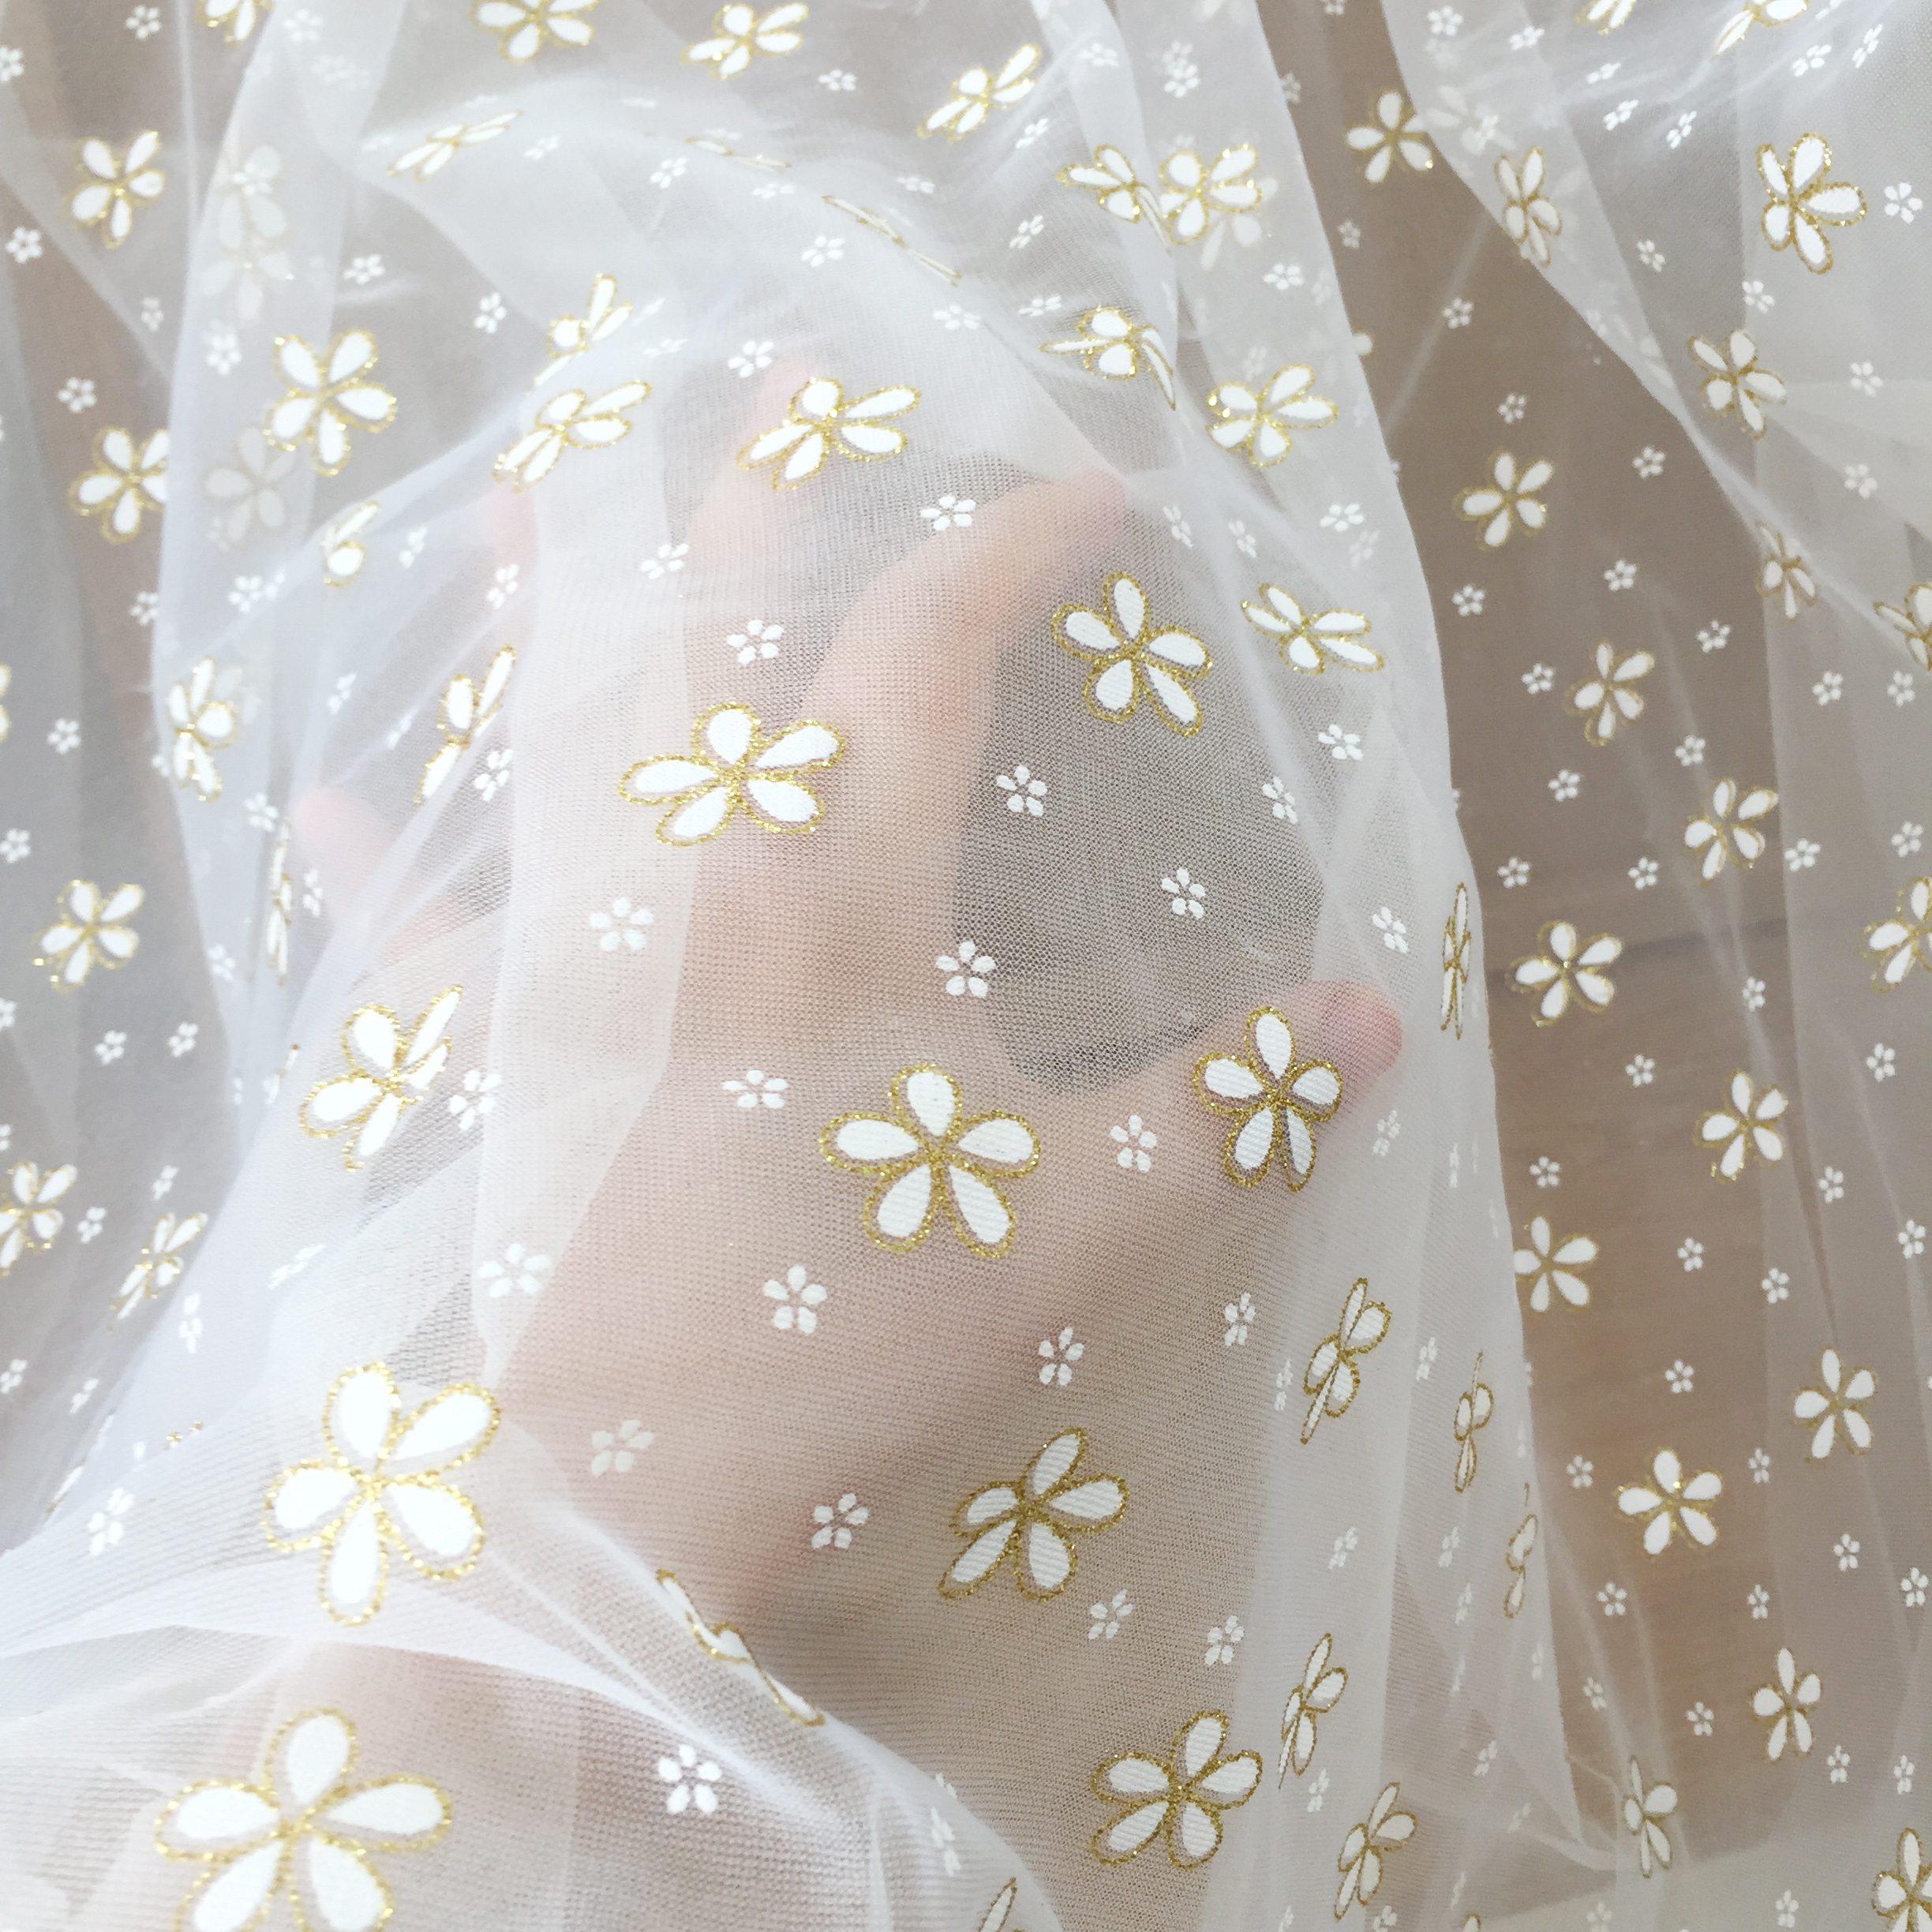 5 Yards Daisy Tulle Lace Fabric with Gold Glitter Embroidery for Bridal Gown Prom Dress DIY Craft 150cm Wide-3